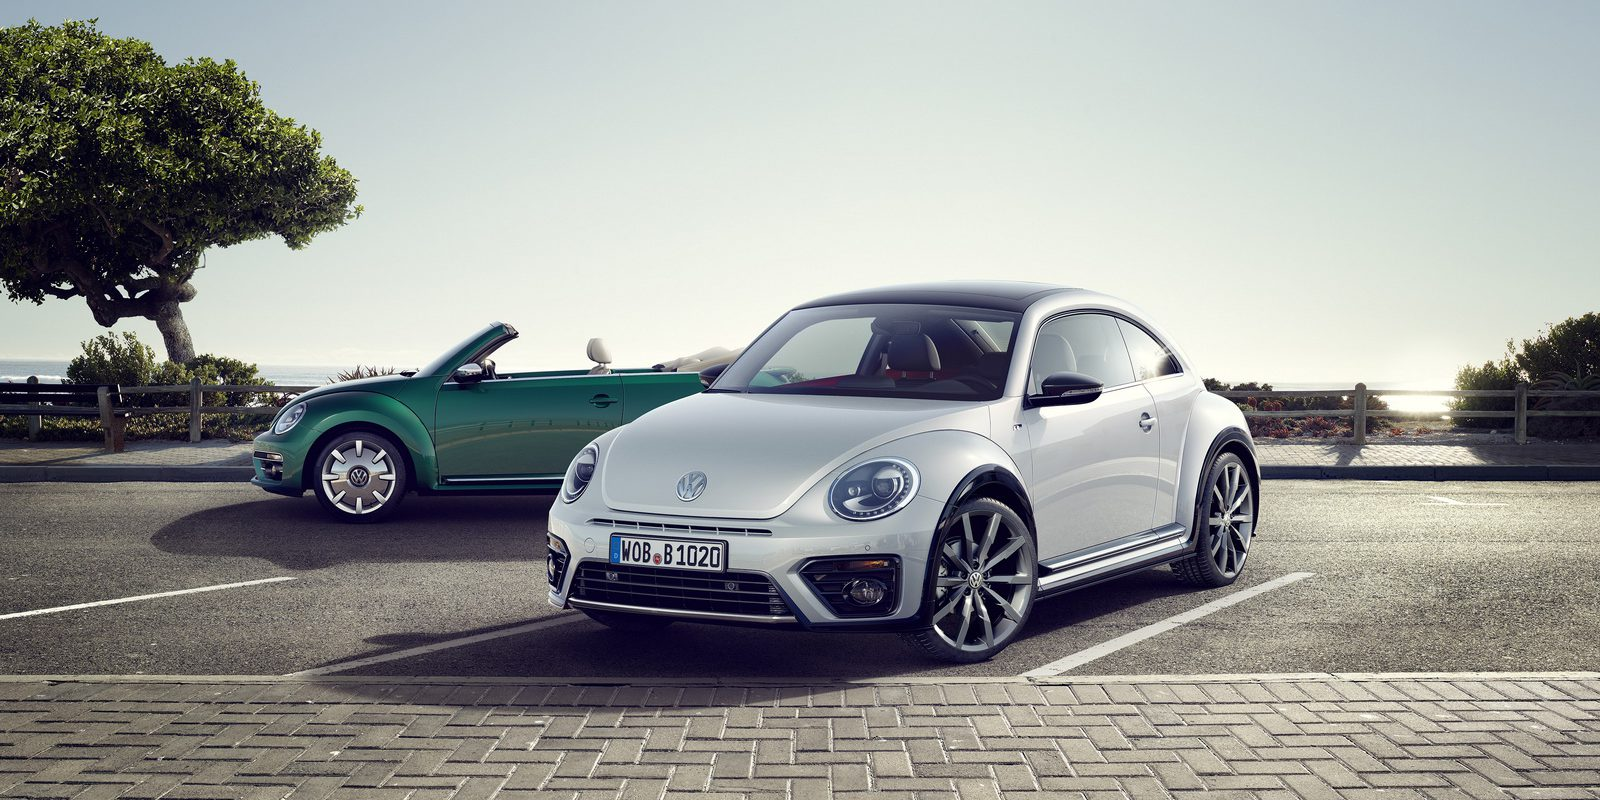 Vw Is Considering An All Electric Beetle For Its Next Vehicle Using Its New Electric Platform Electrek